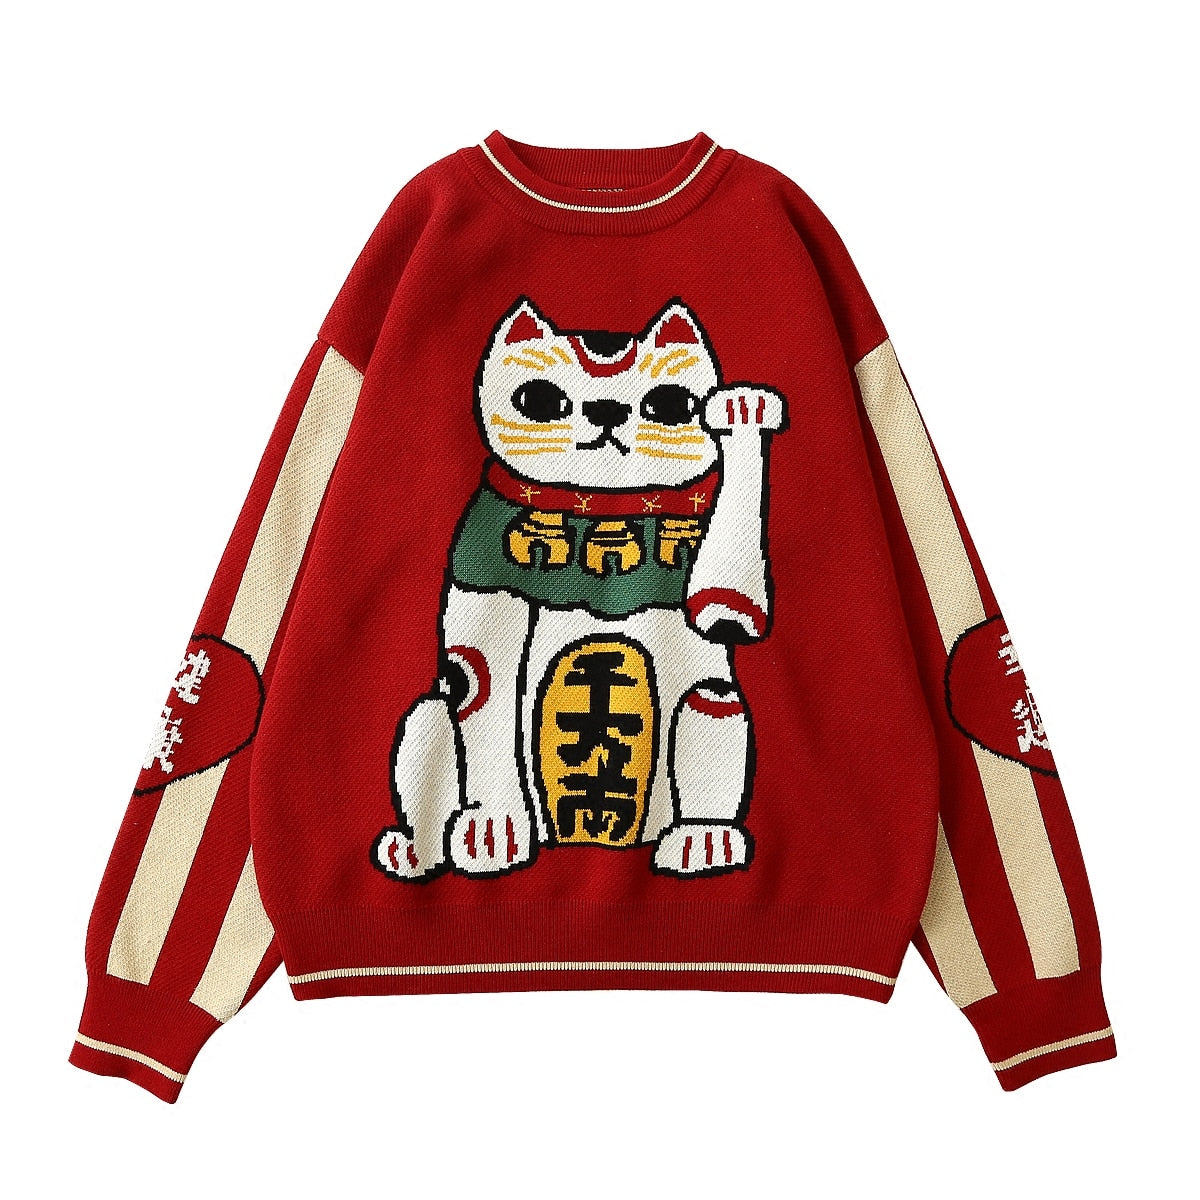 Spring Chinese Thickened Red Pullover Sweater Lucky Cat Cotton Knitwear Top Casual High Quality Warm Winter